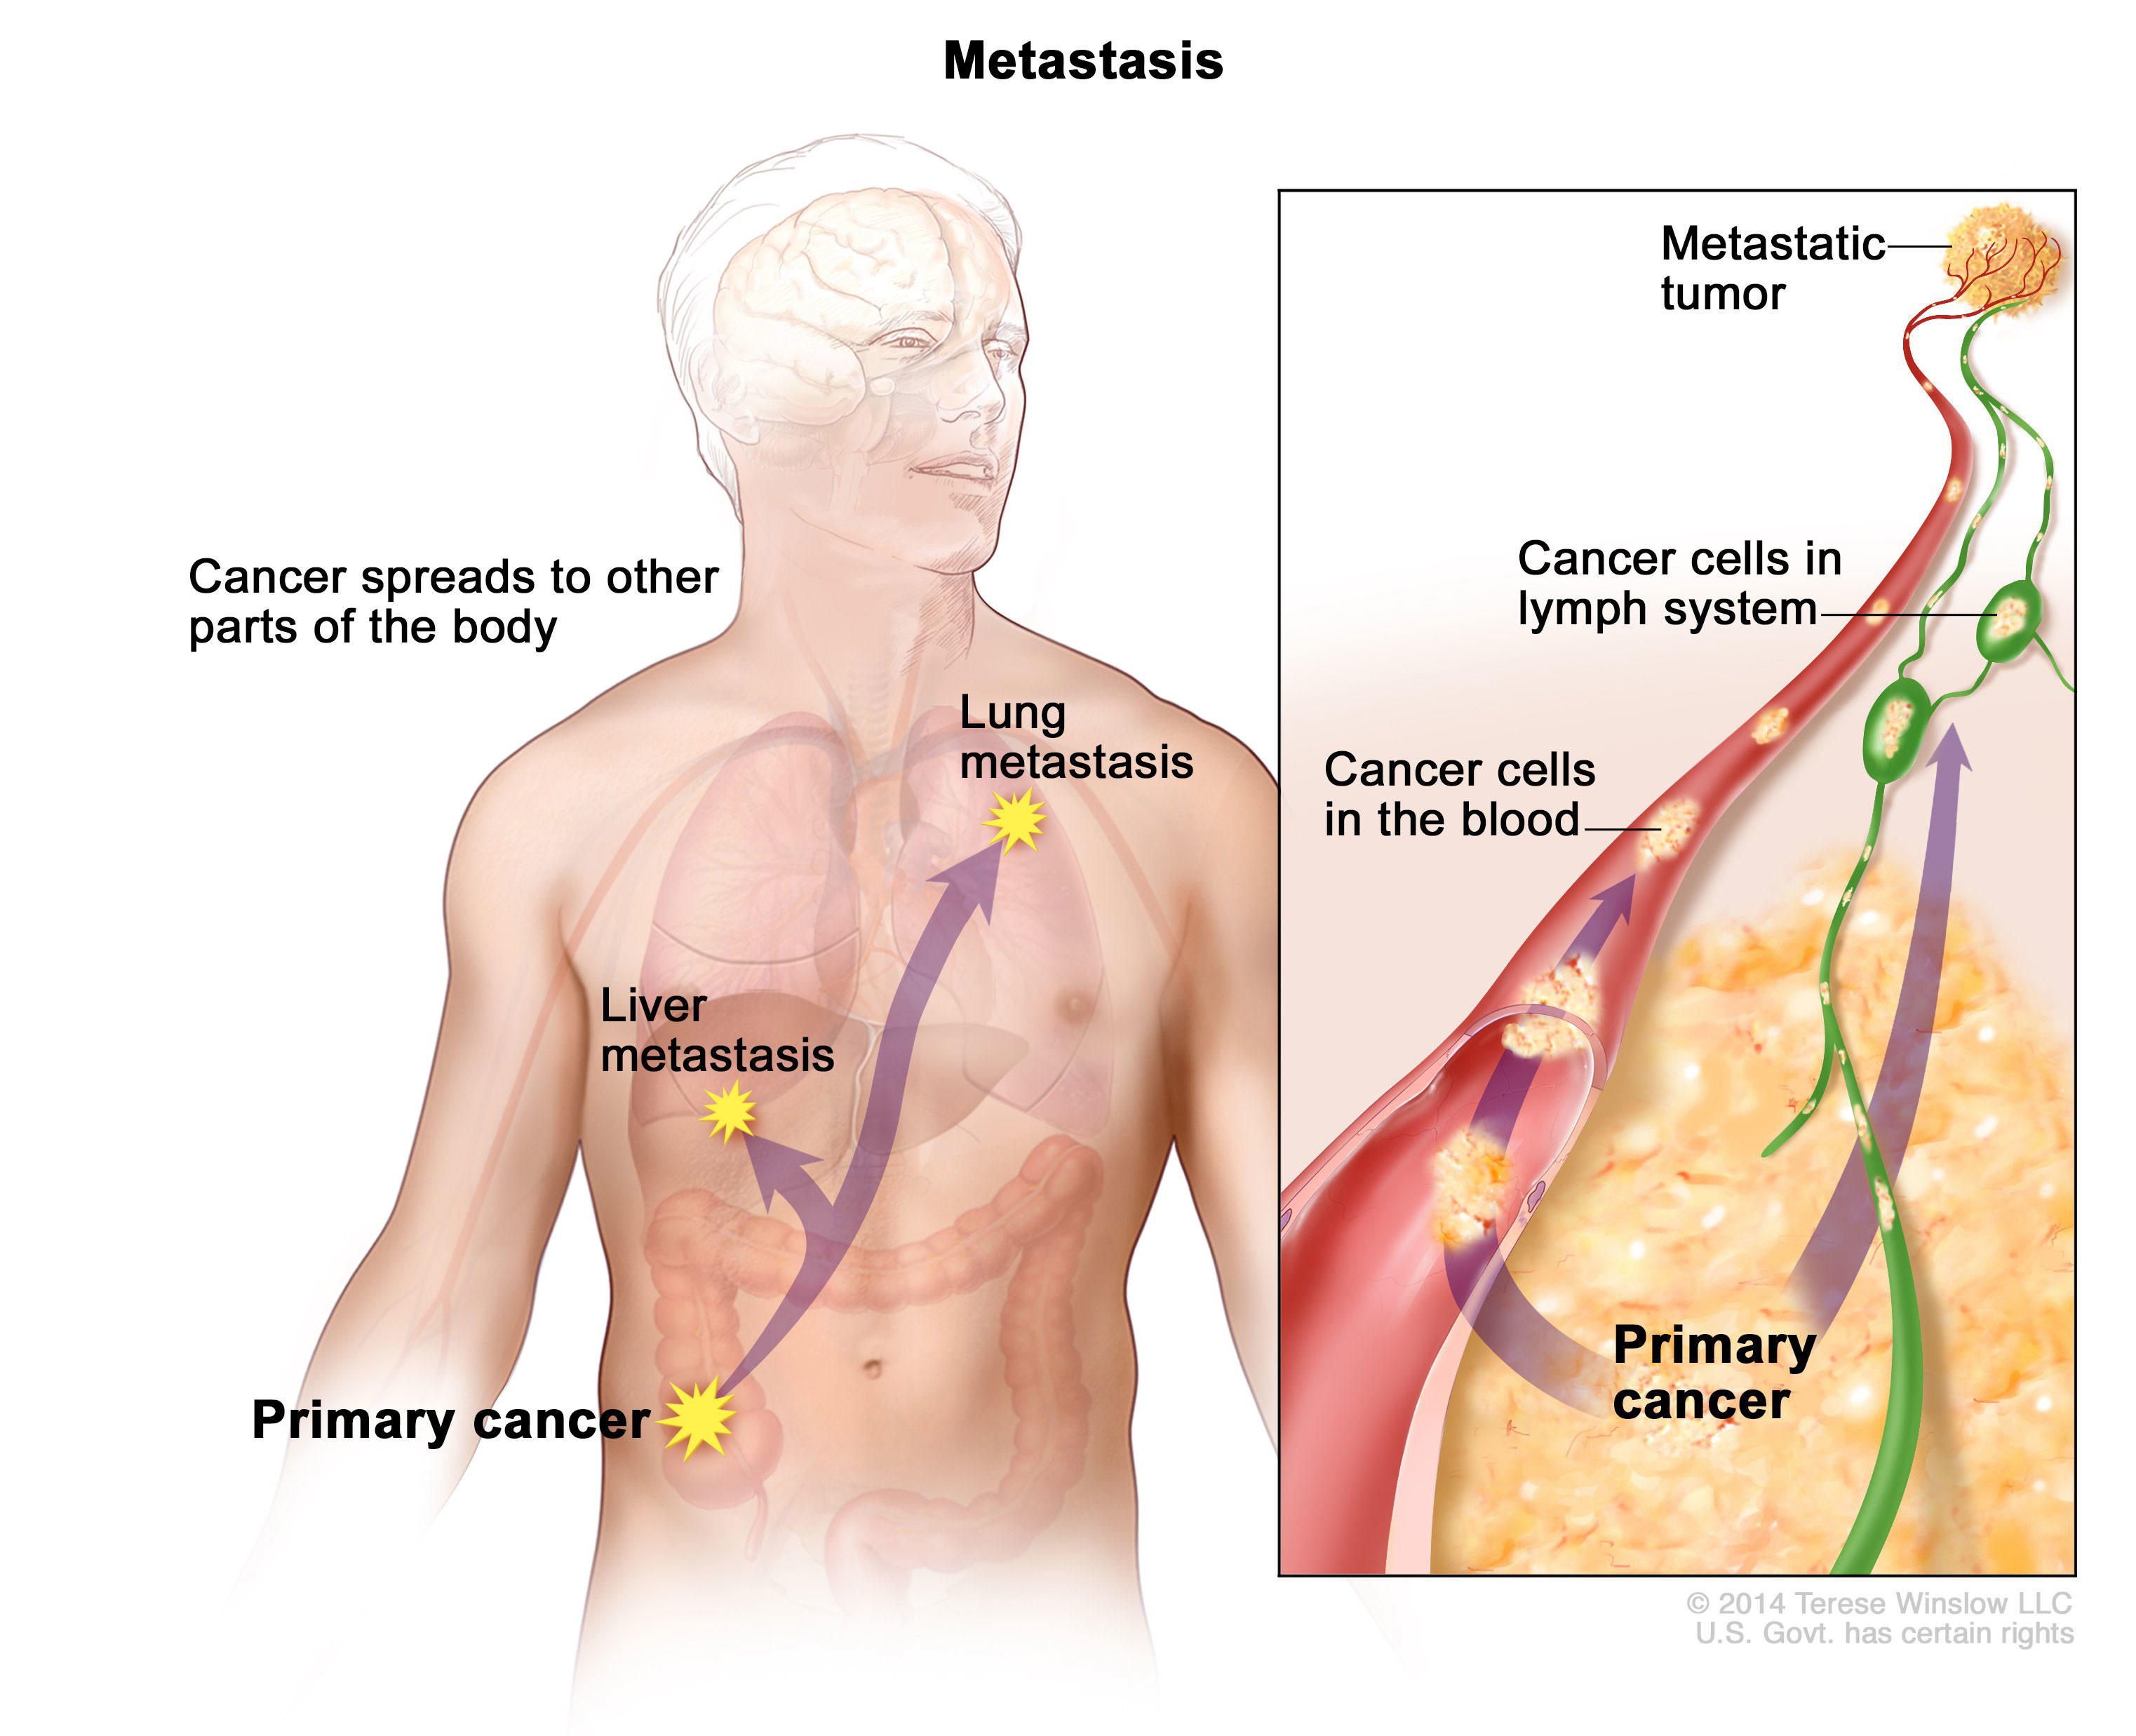 metastatic cancer and blood toxine panton valentine